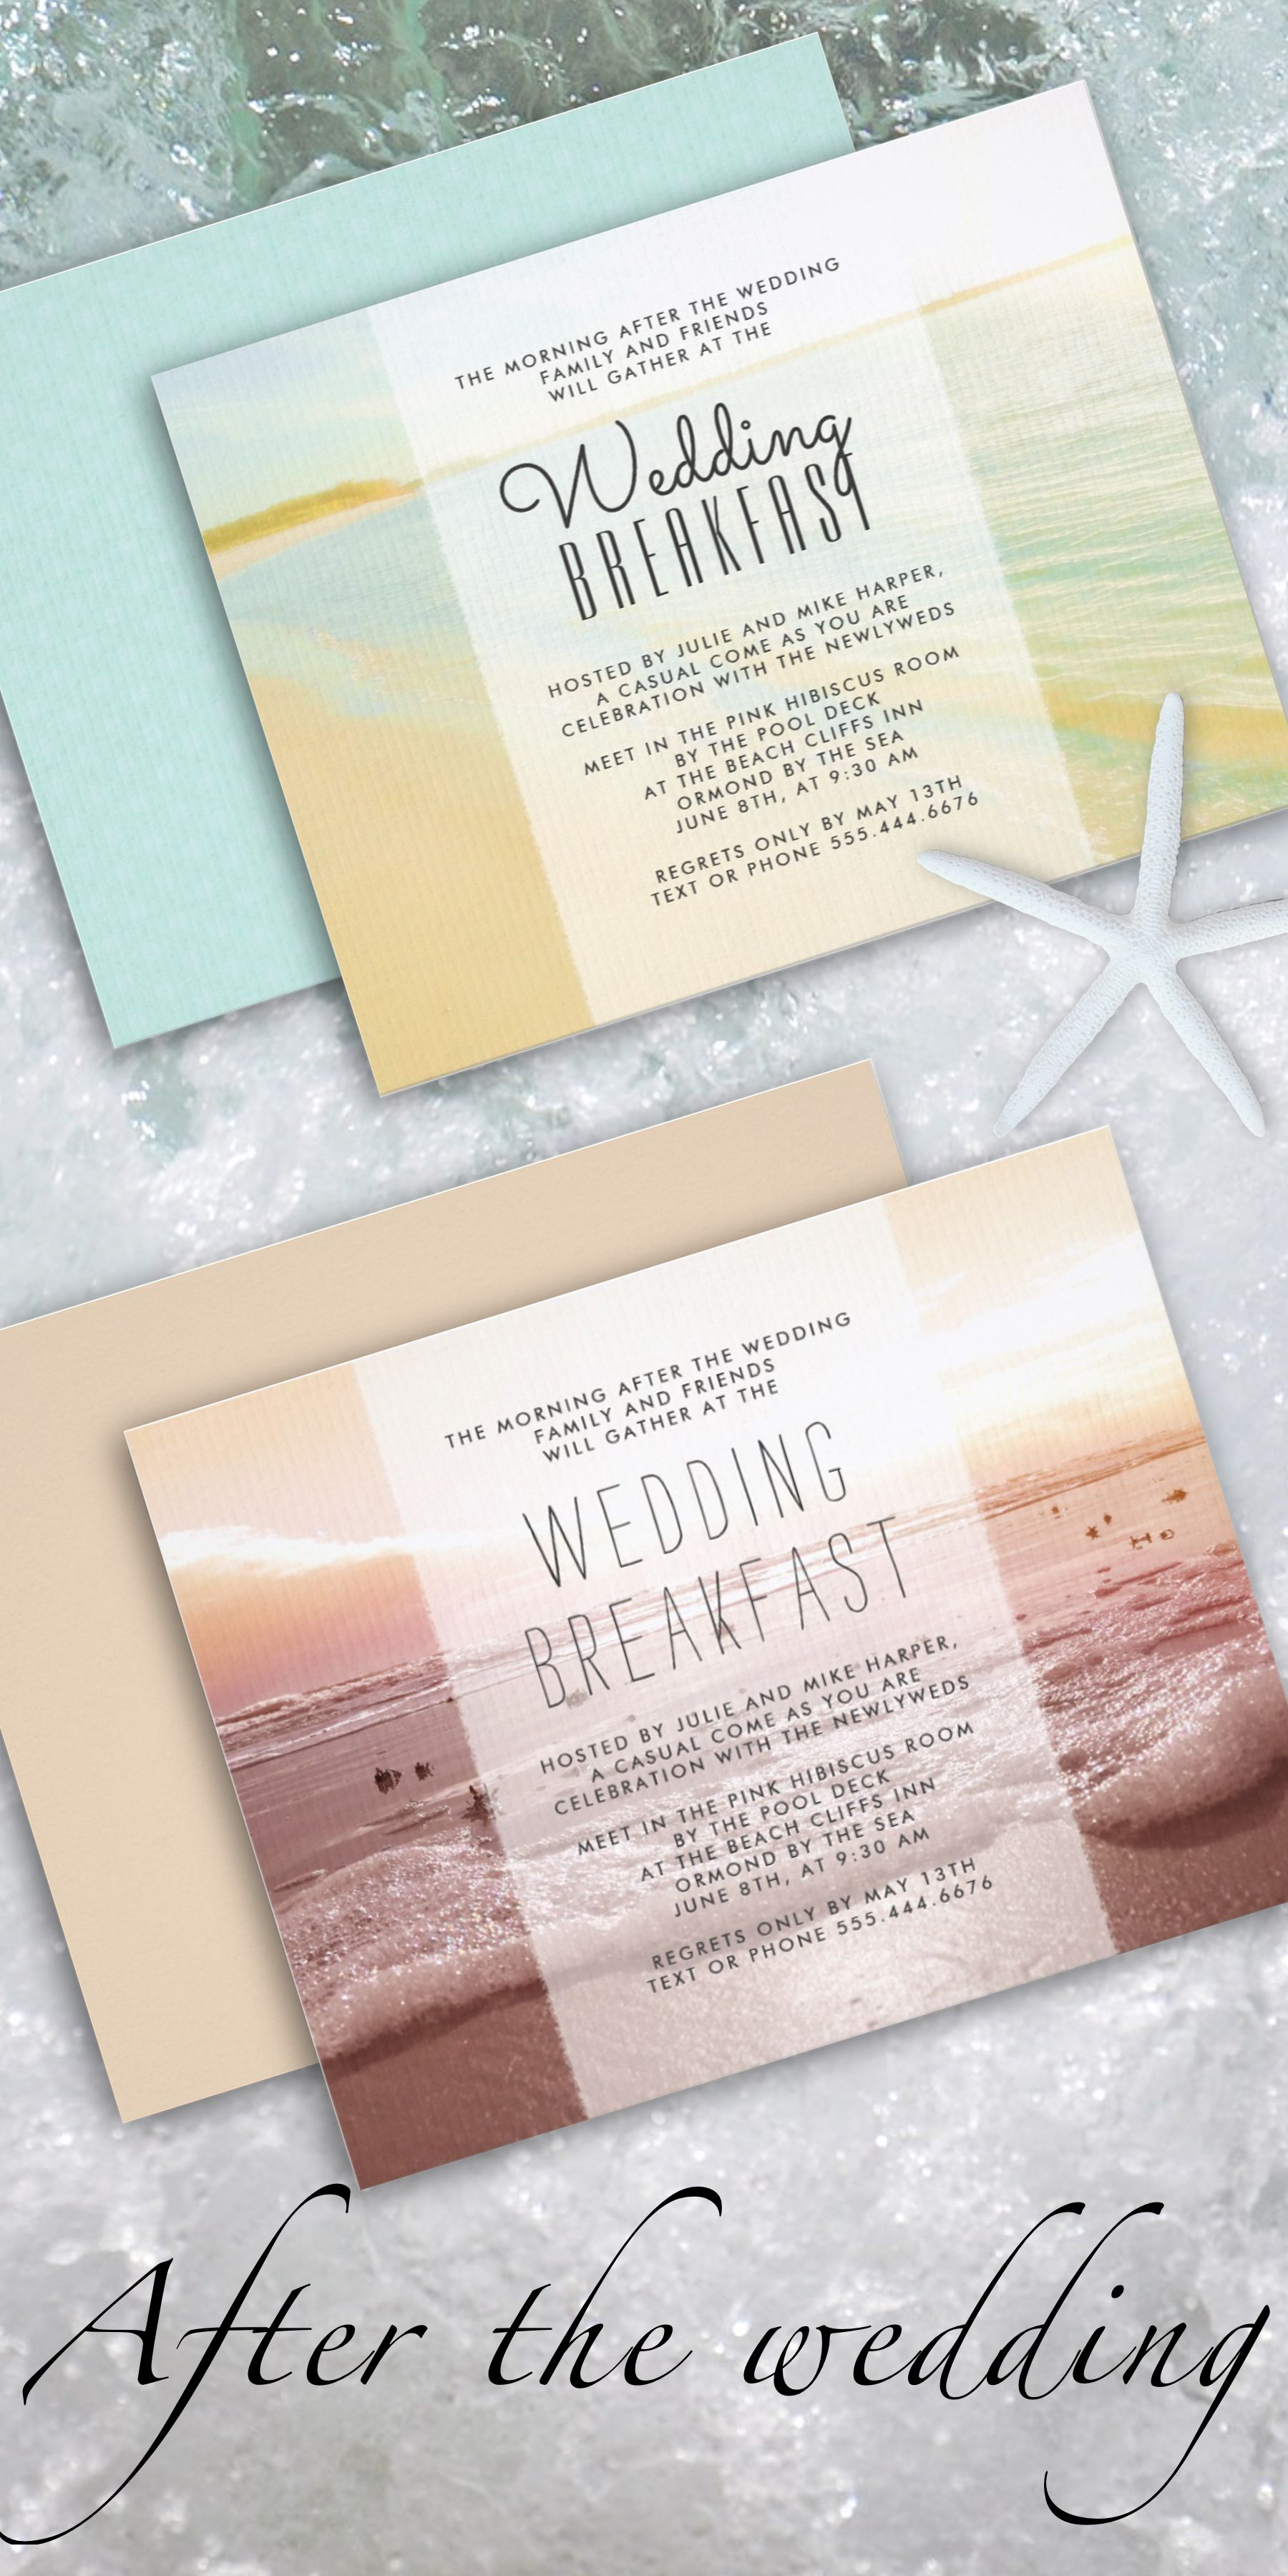 Beach wedding breakfast / brunch invitations to use for the morning ...